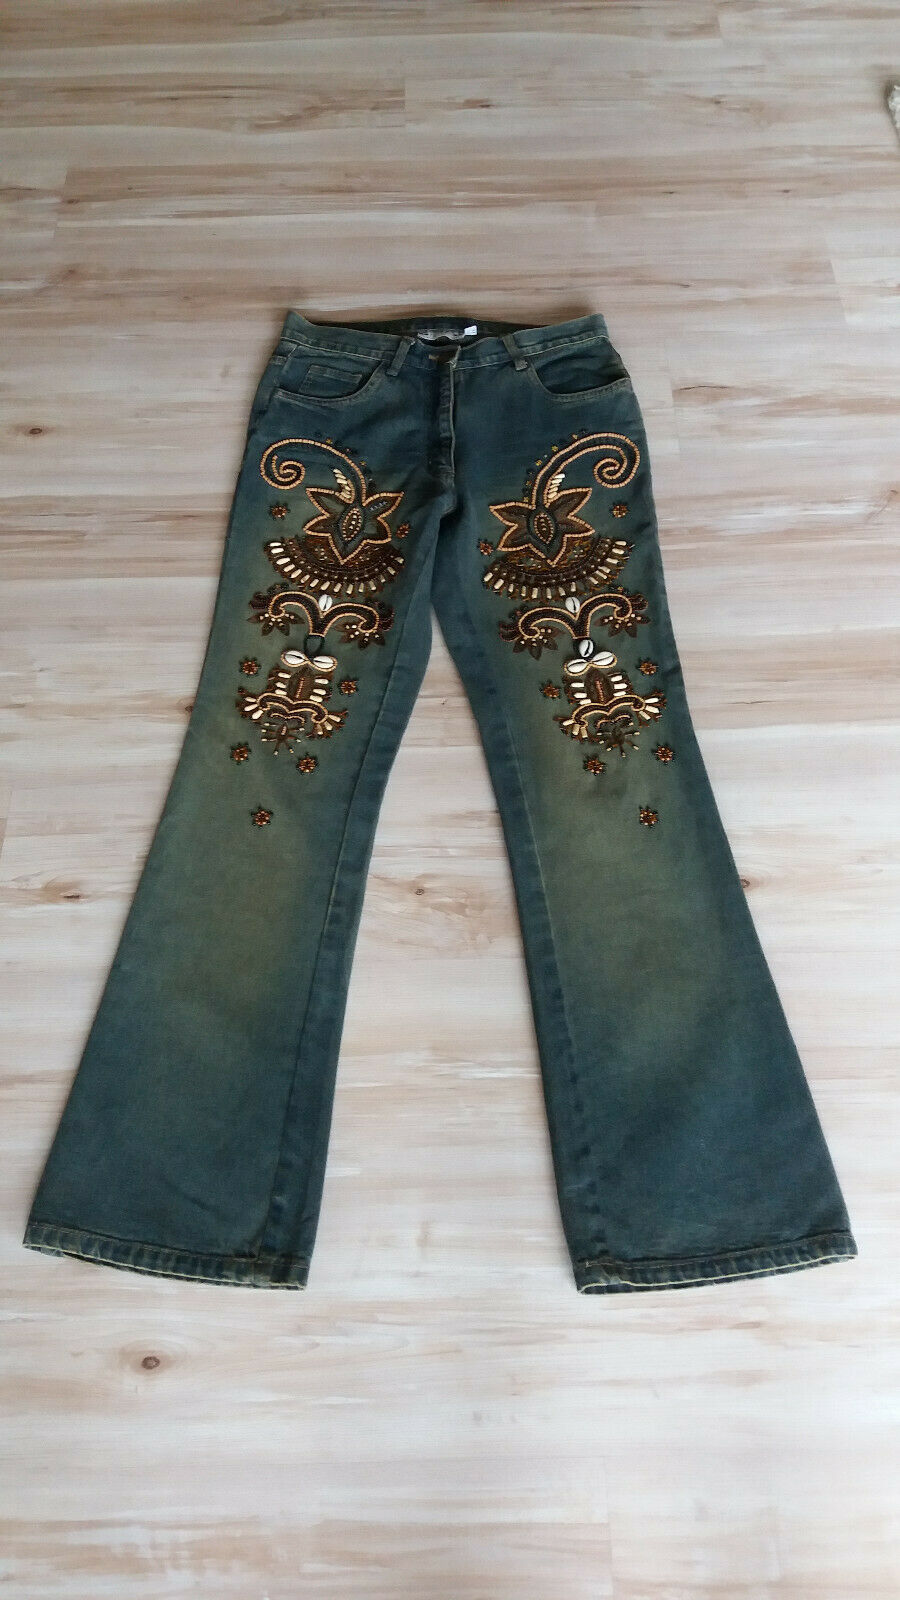 Jeans with Beaded Embroidery Unique